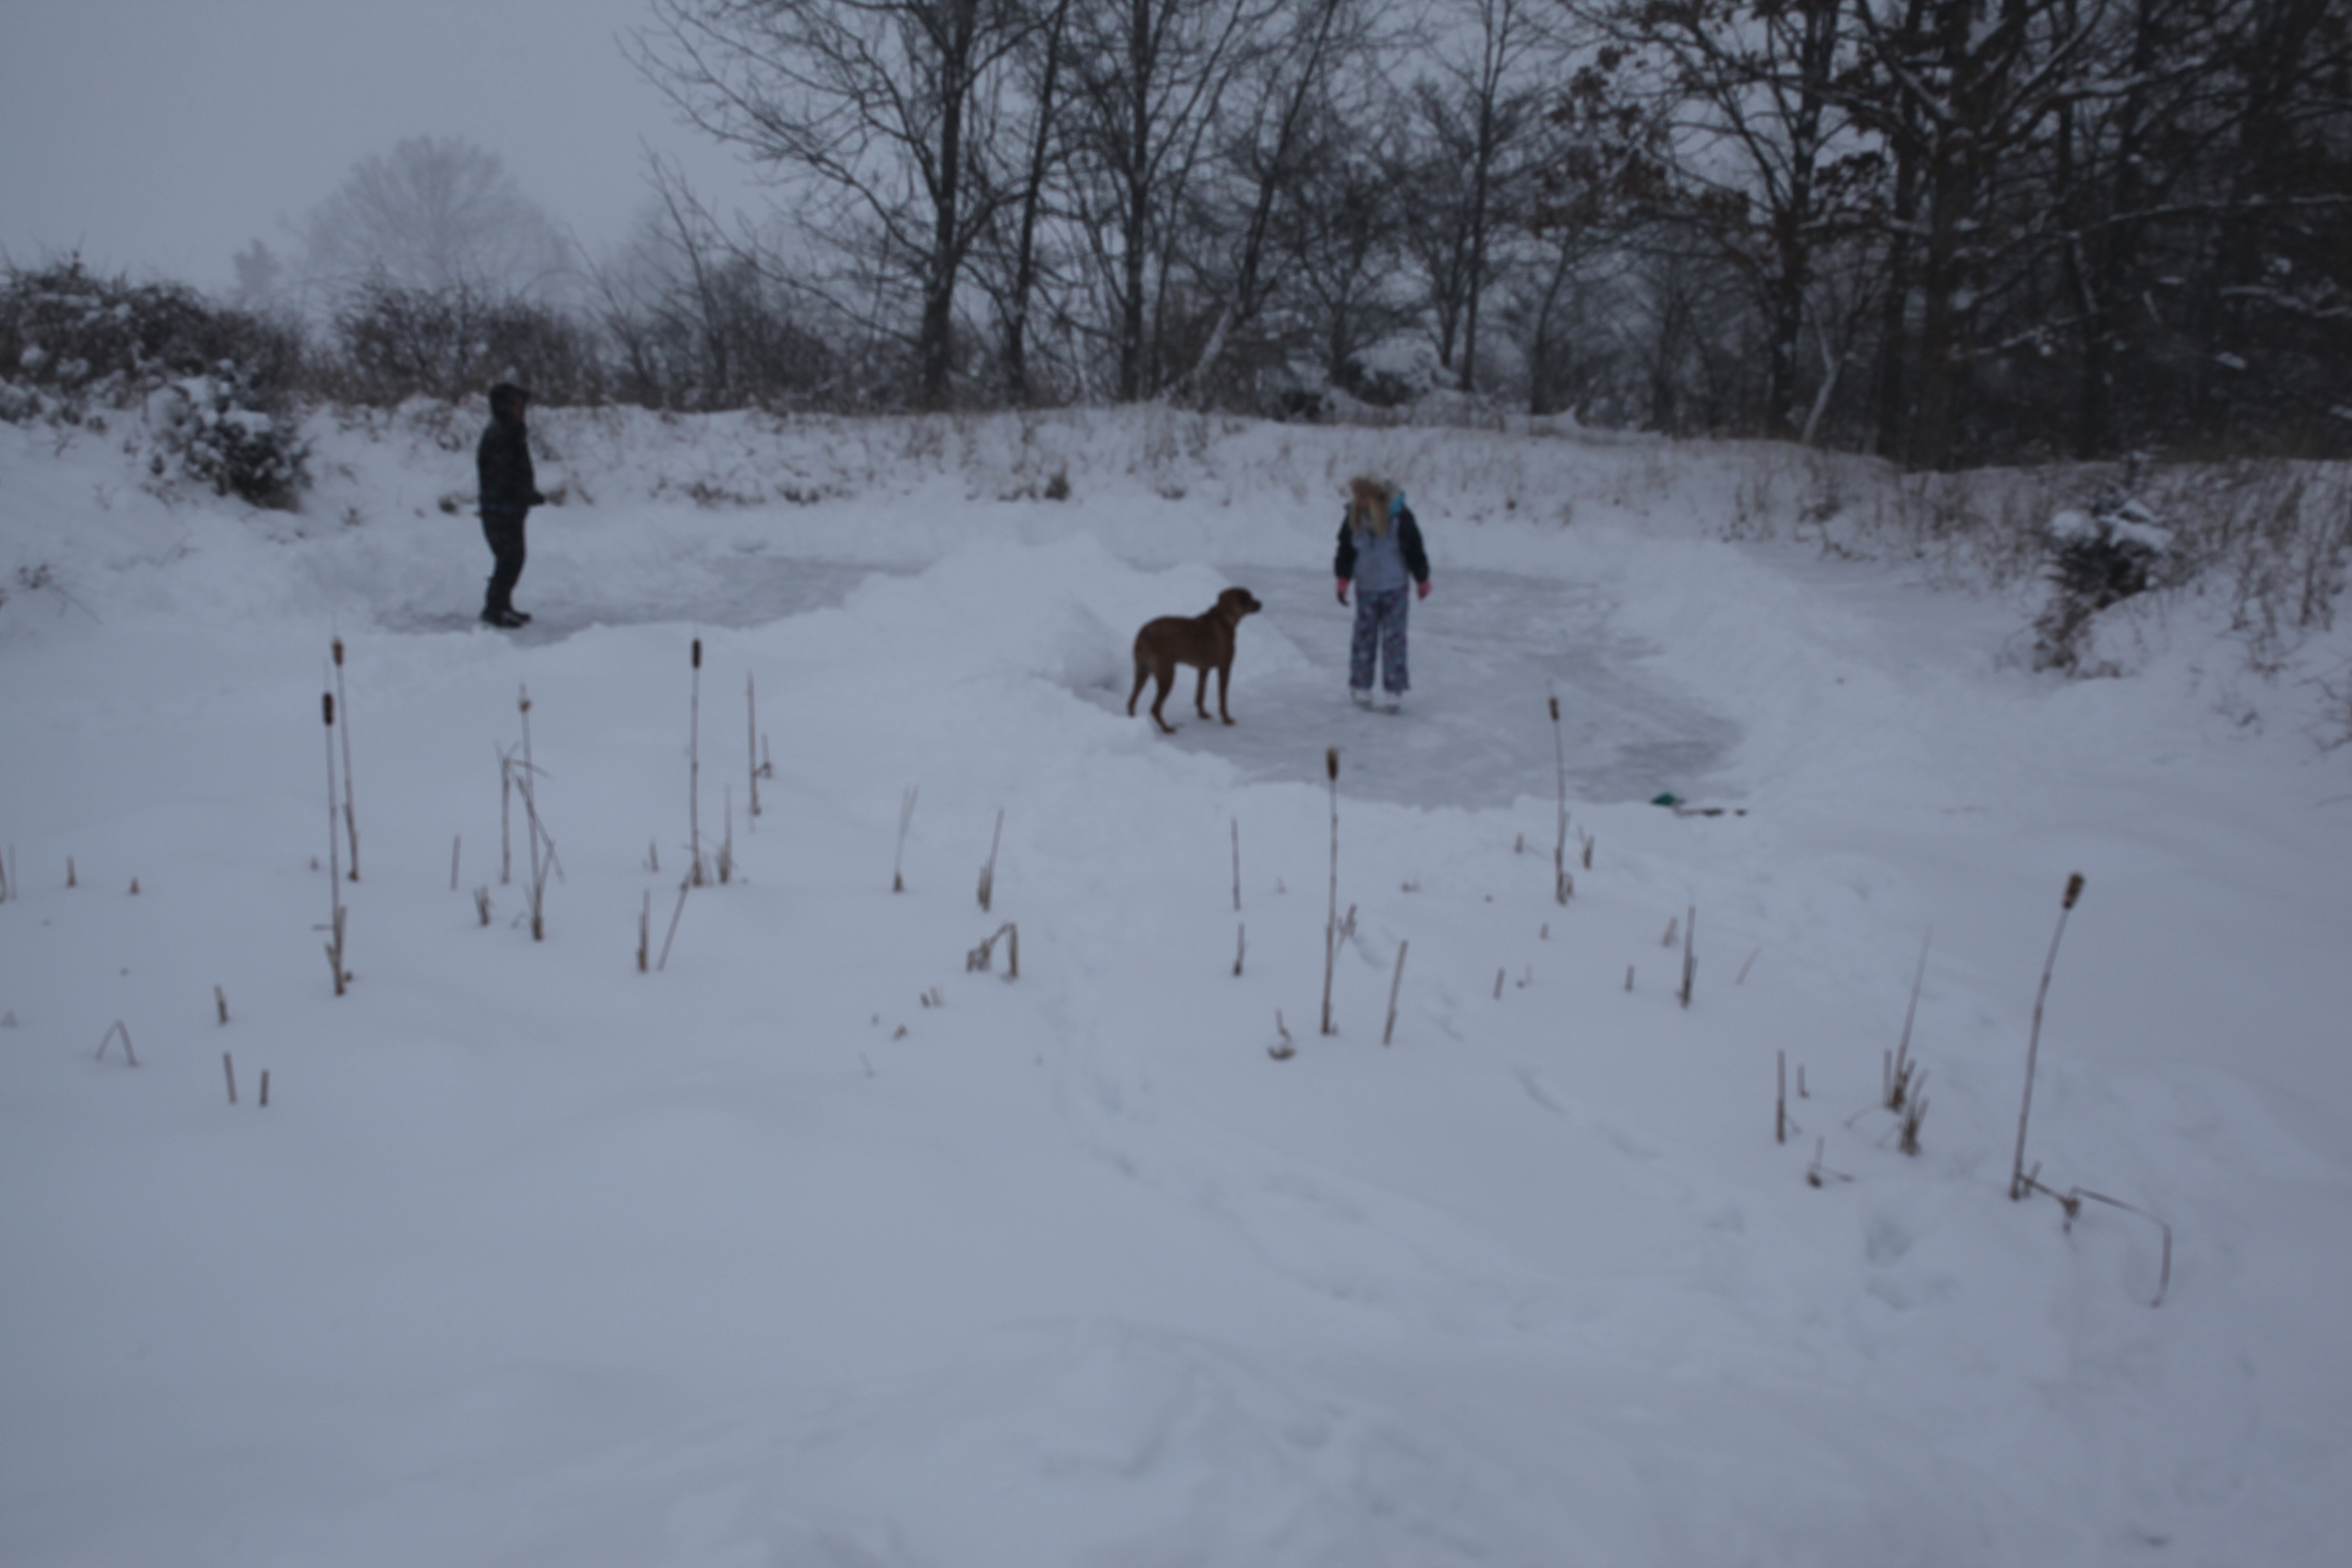 shoveling the pond #2